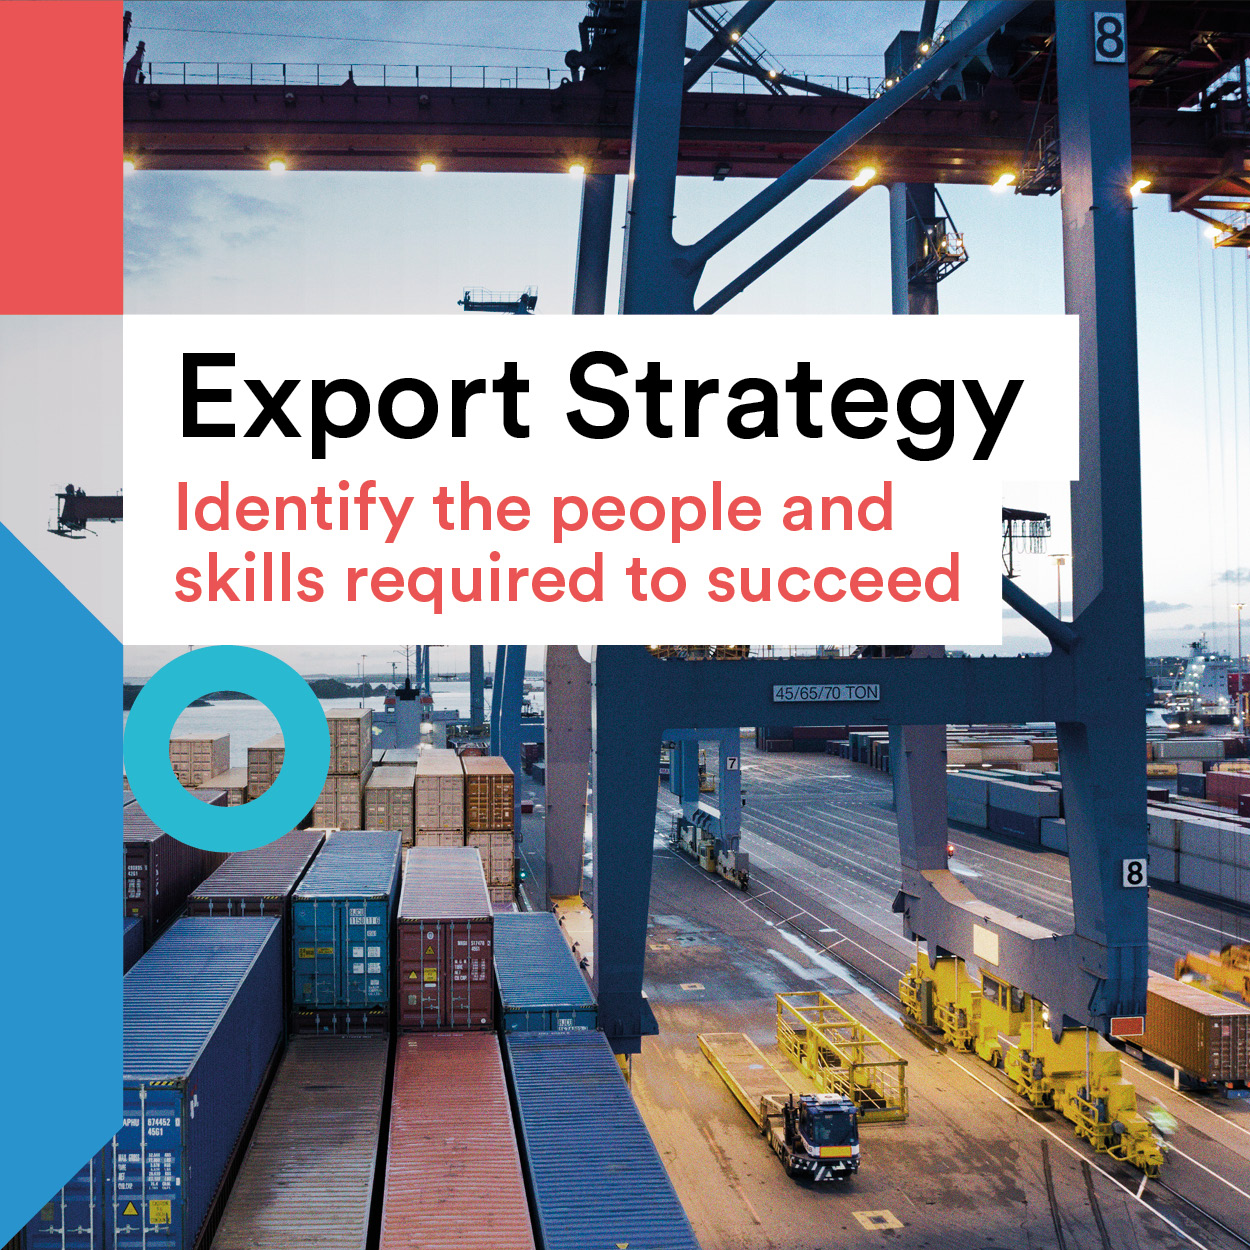 Export Strategy title and port image